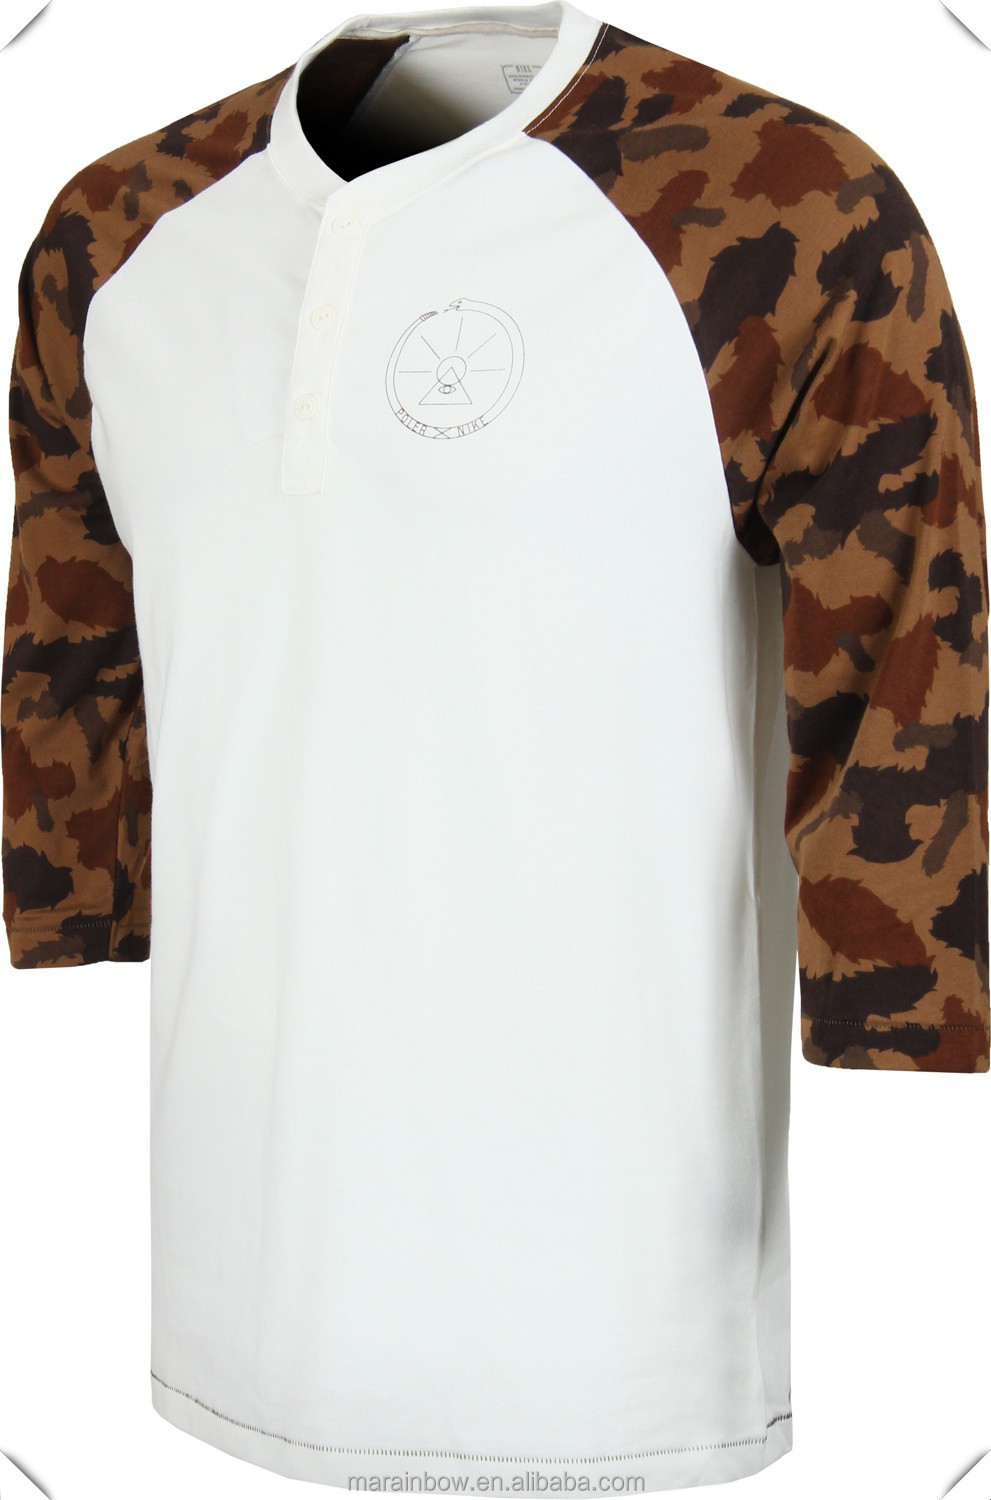 men's sublimation printing camo raglan sleeves t shirts with placket, most hotsale fashion design in USA market